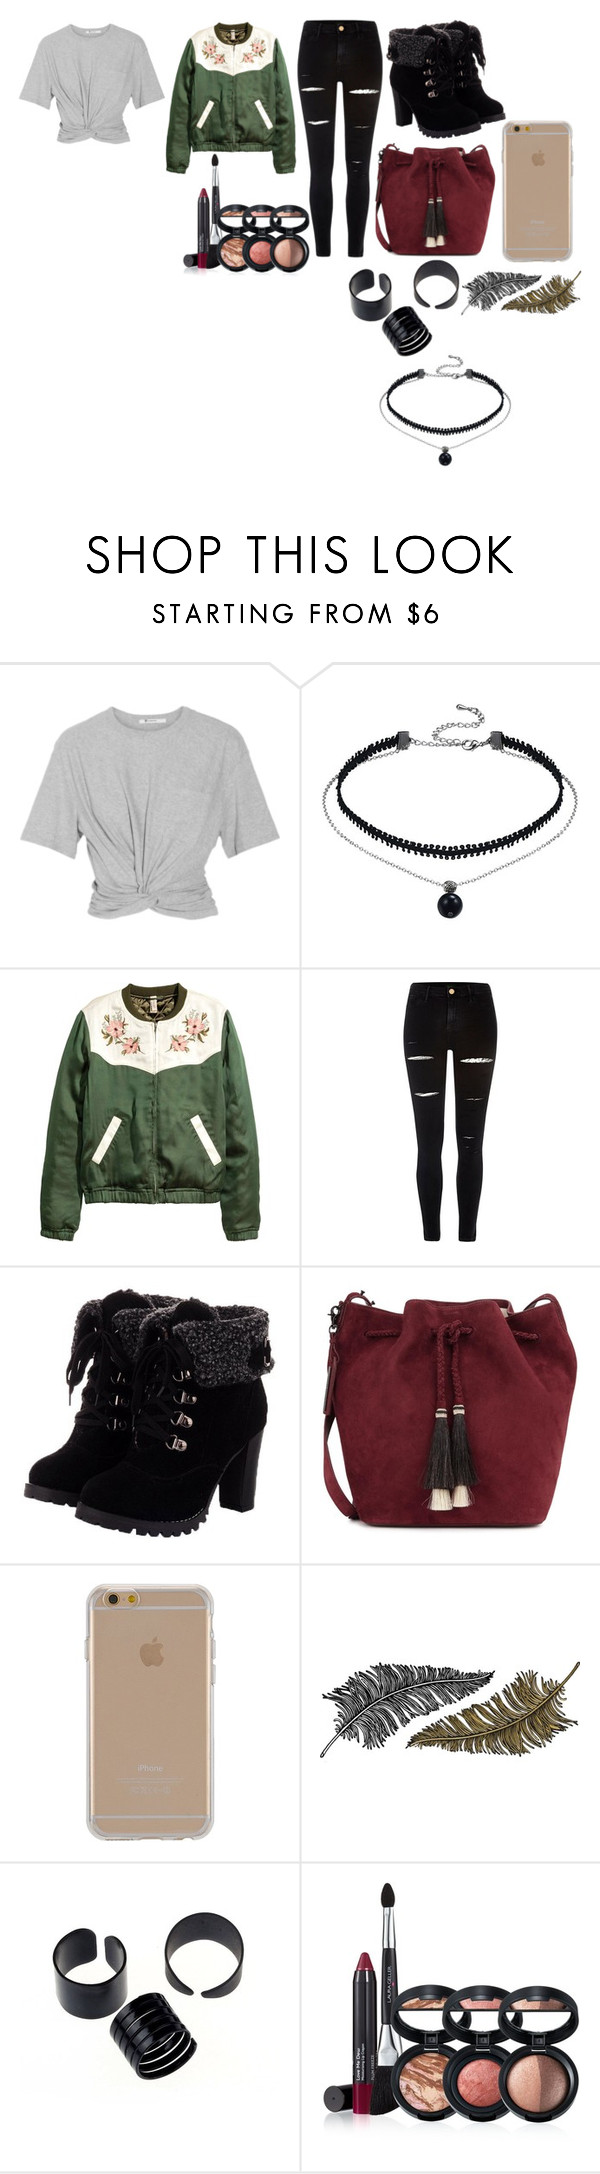 """""""Untitled #73"""" by gracefid ❤ liked on Polyvore featuring T By Alexander Wang, River Island, Loeffler Randall, Agent 18, Paperself and Laura Geller"""